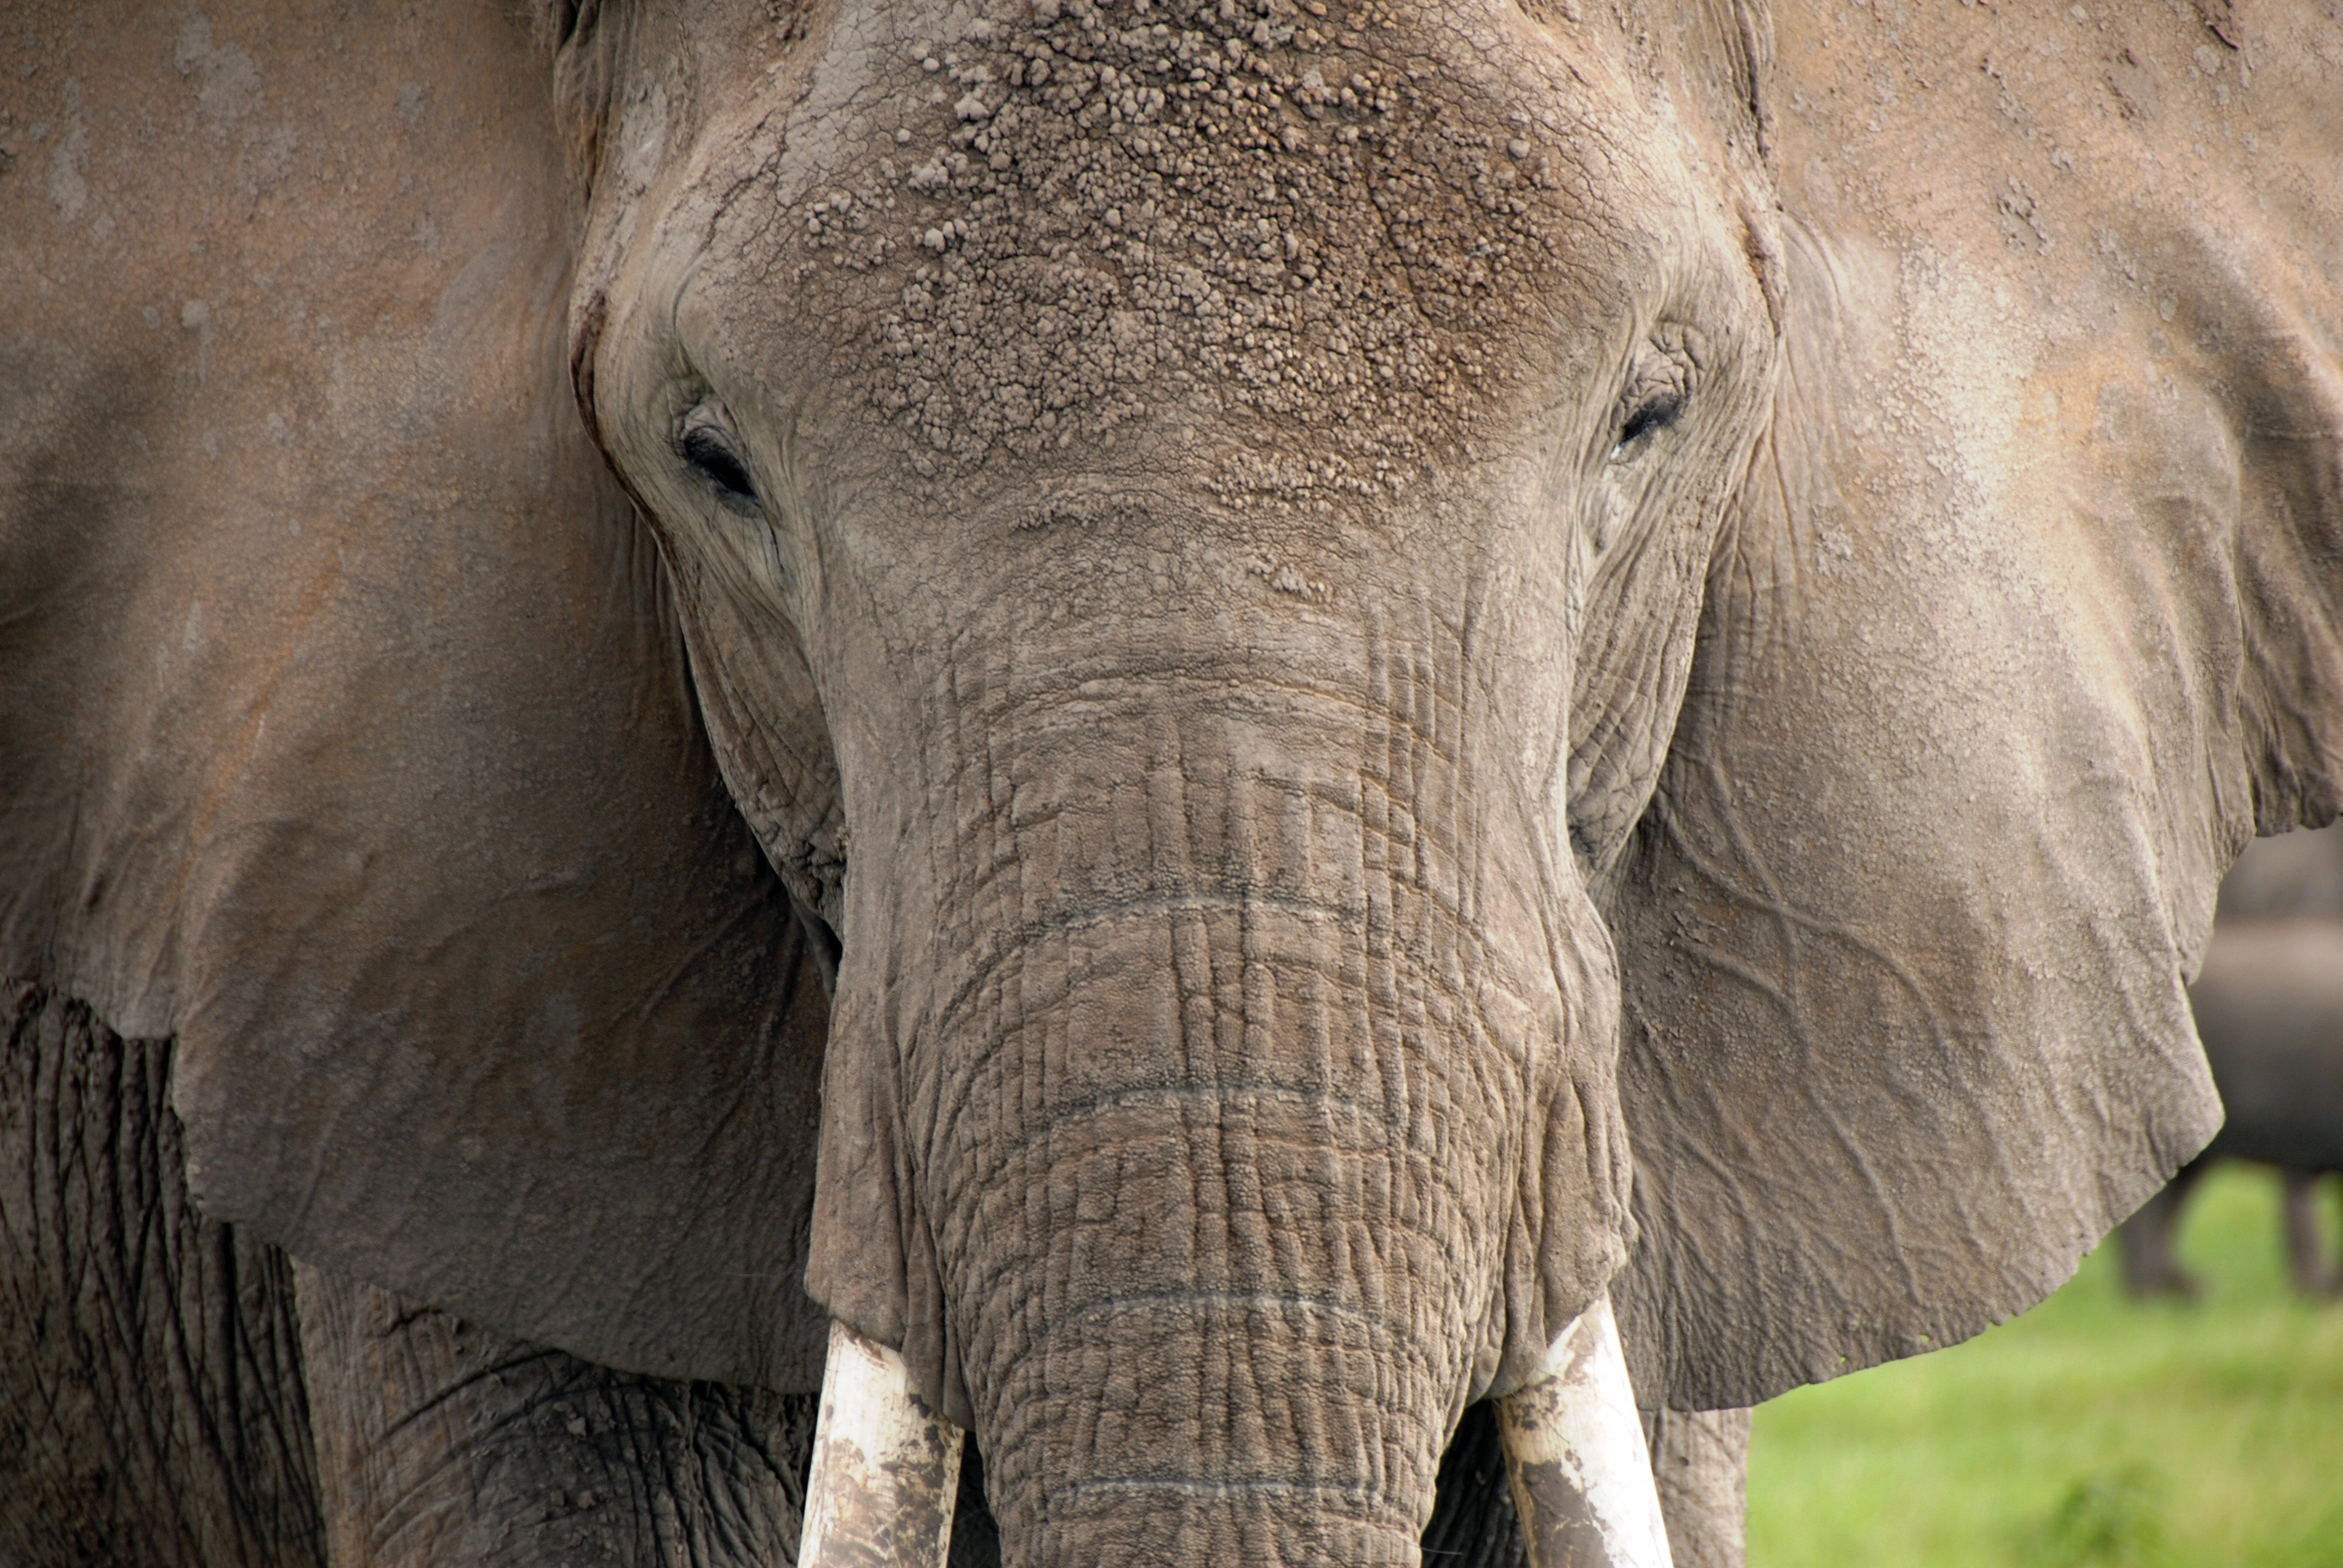 Belgium Calls for EU Ban on Exporting Ivory